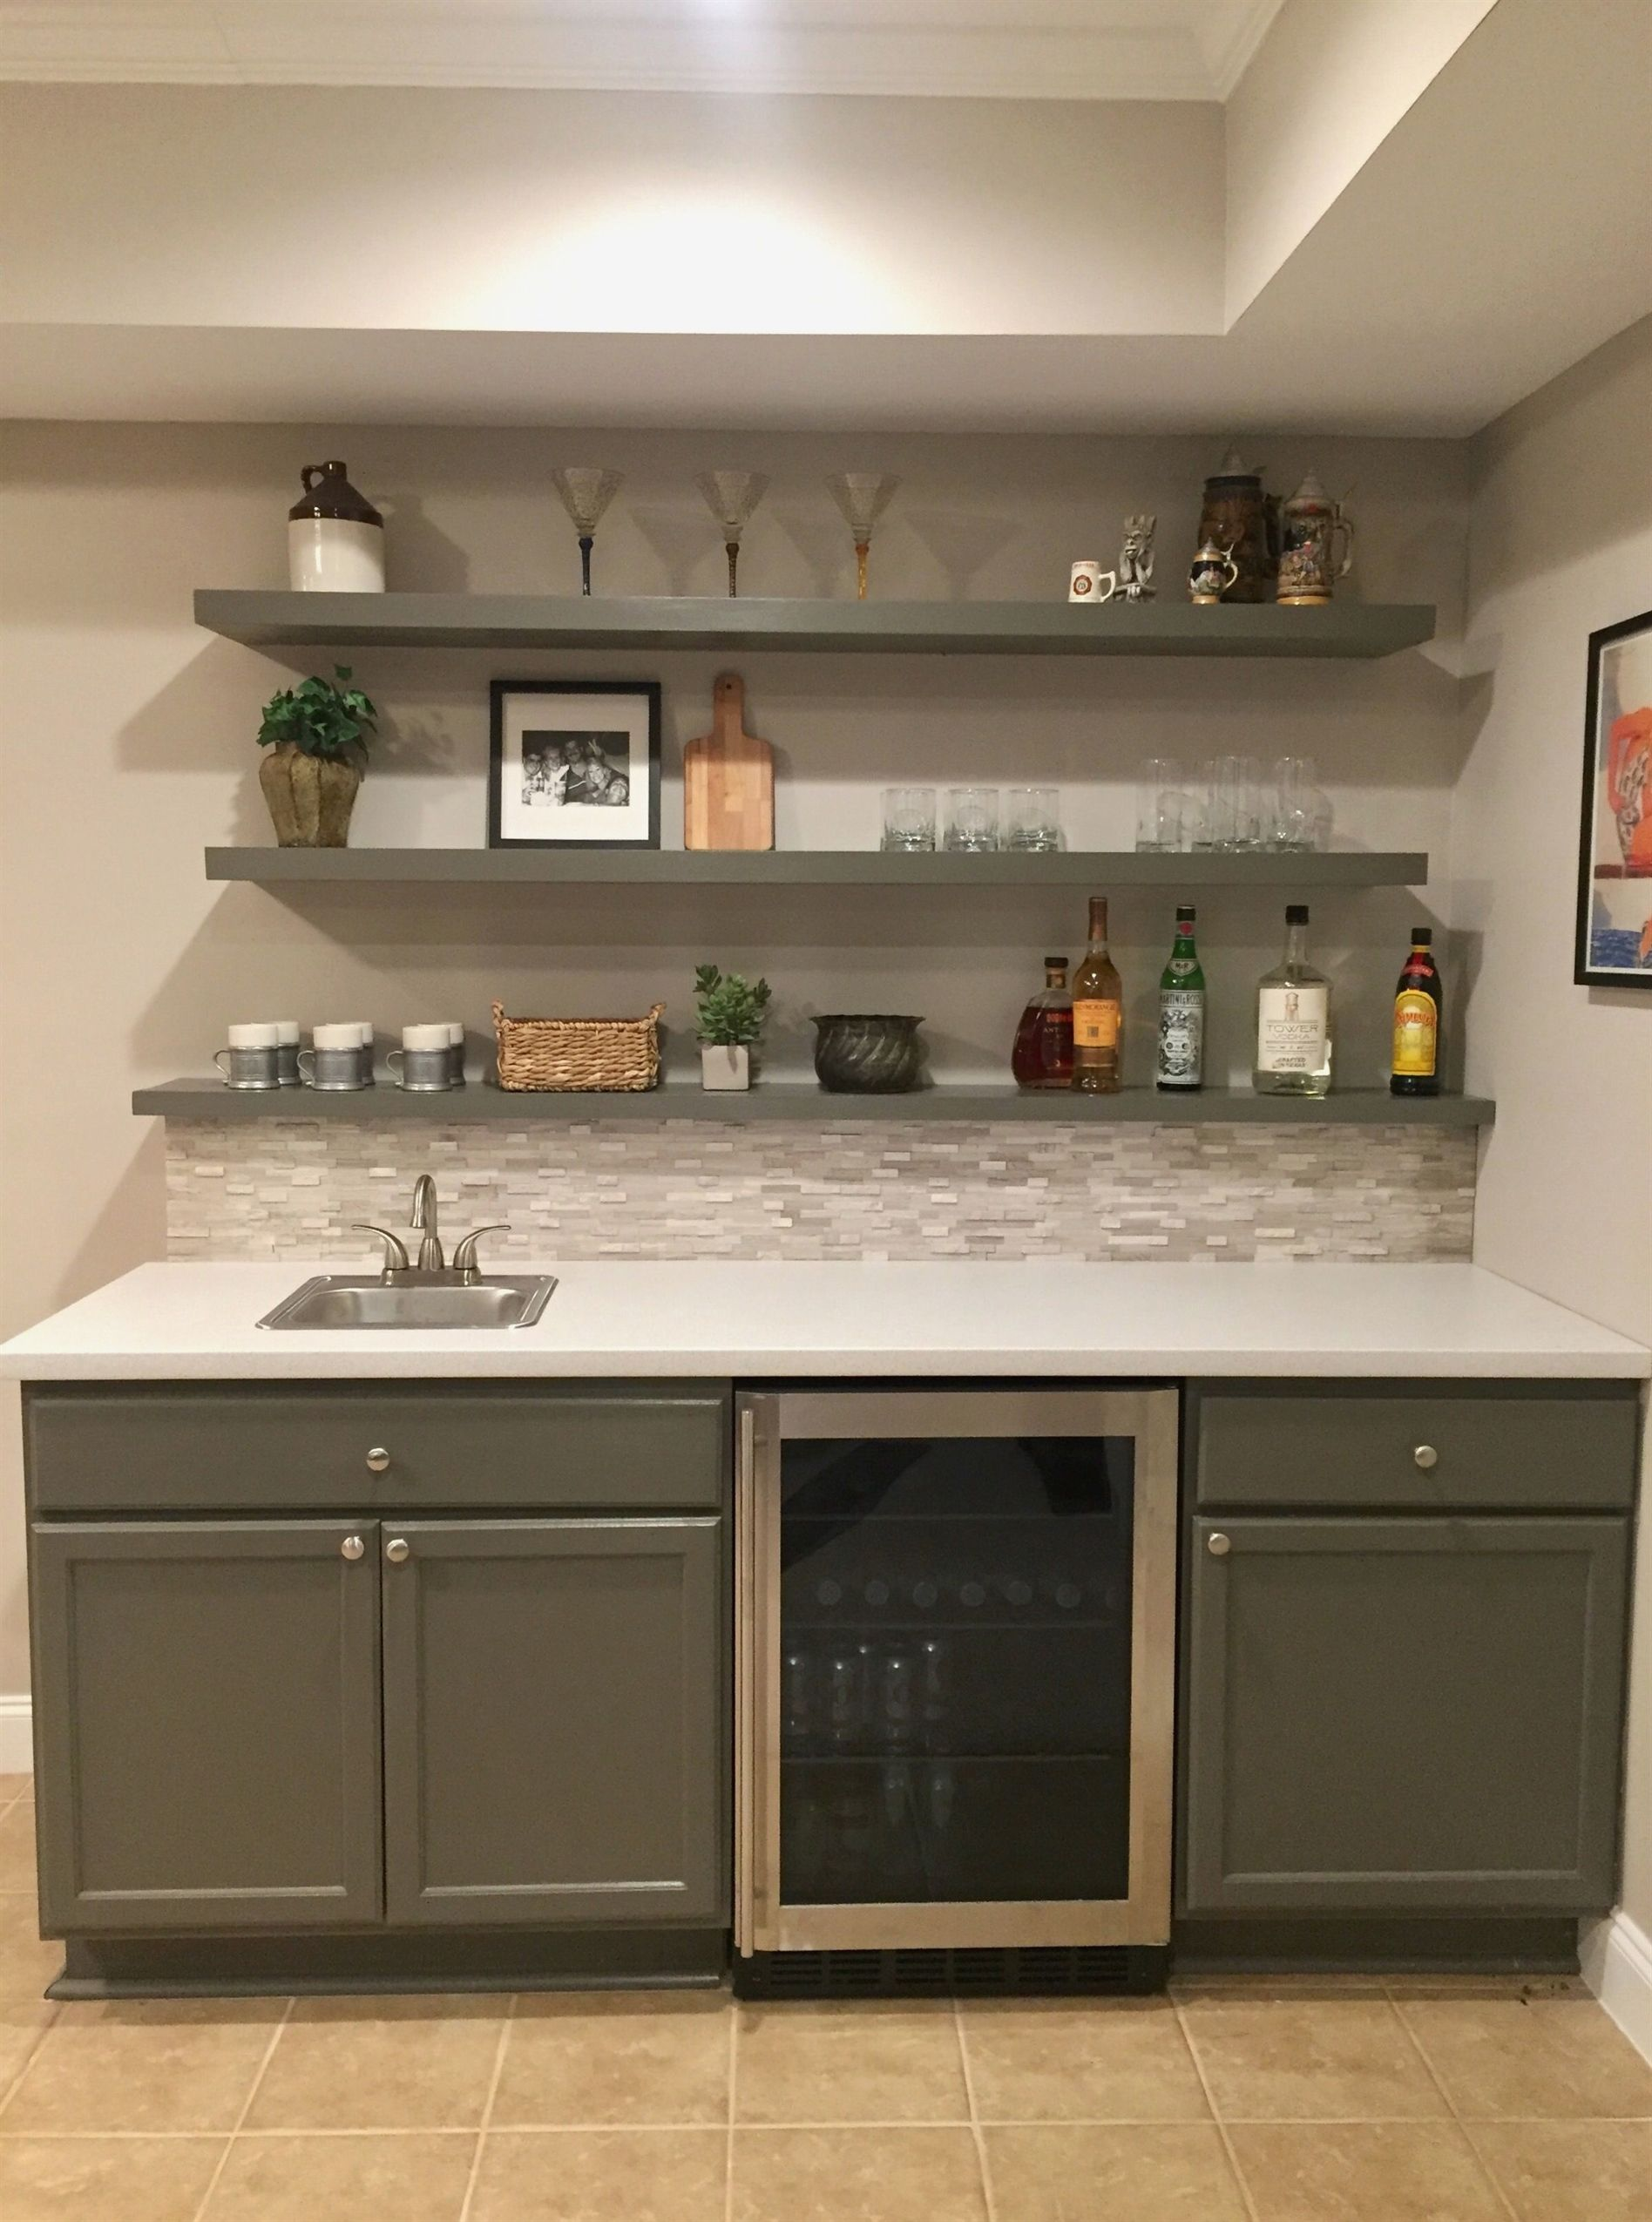 Basement Bar Almost Done Backsplash Tile And Cabinets From Hd Shelves From Ikea Paint Sw Porpoise Basement Kitchenette Basement Decor Basement Bar Designs